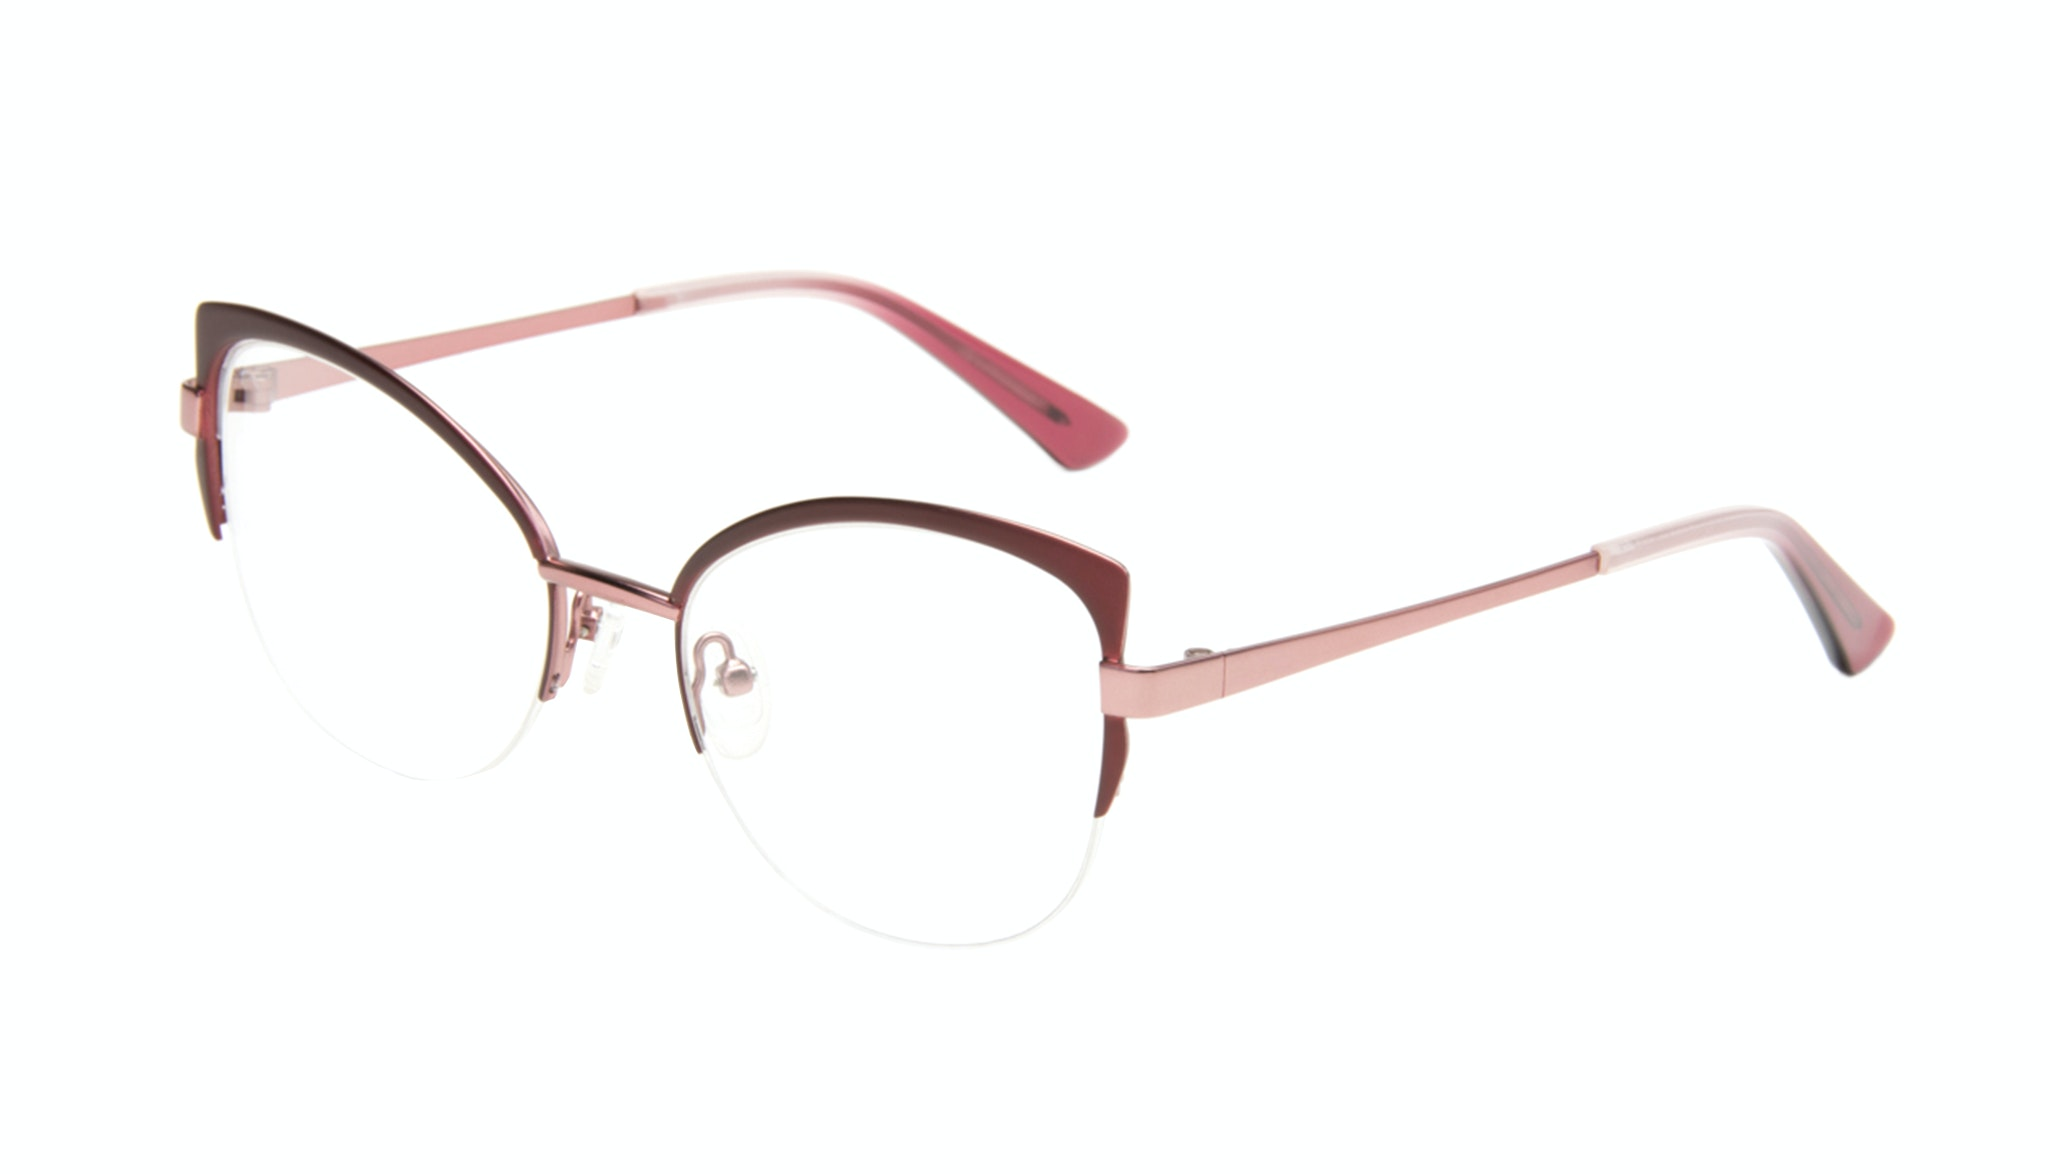 Affordable Fashion Glasses Cat Eye Semi-Rimless Eyeglasses Women Adore Cranberry Tilt